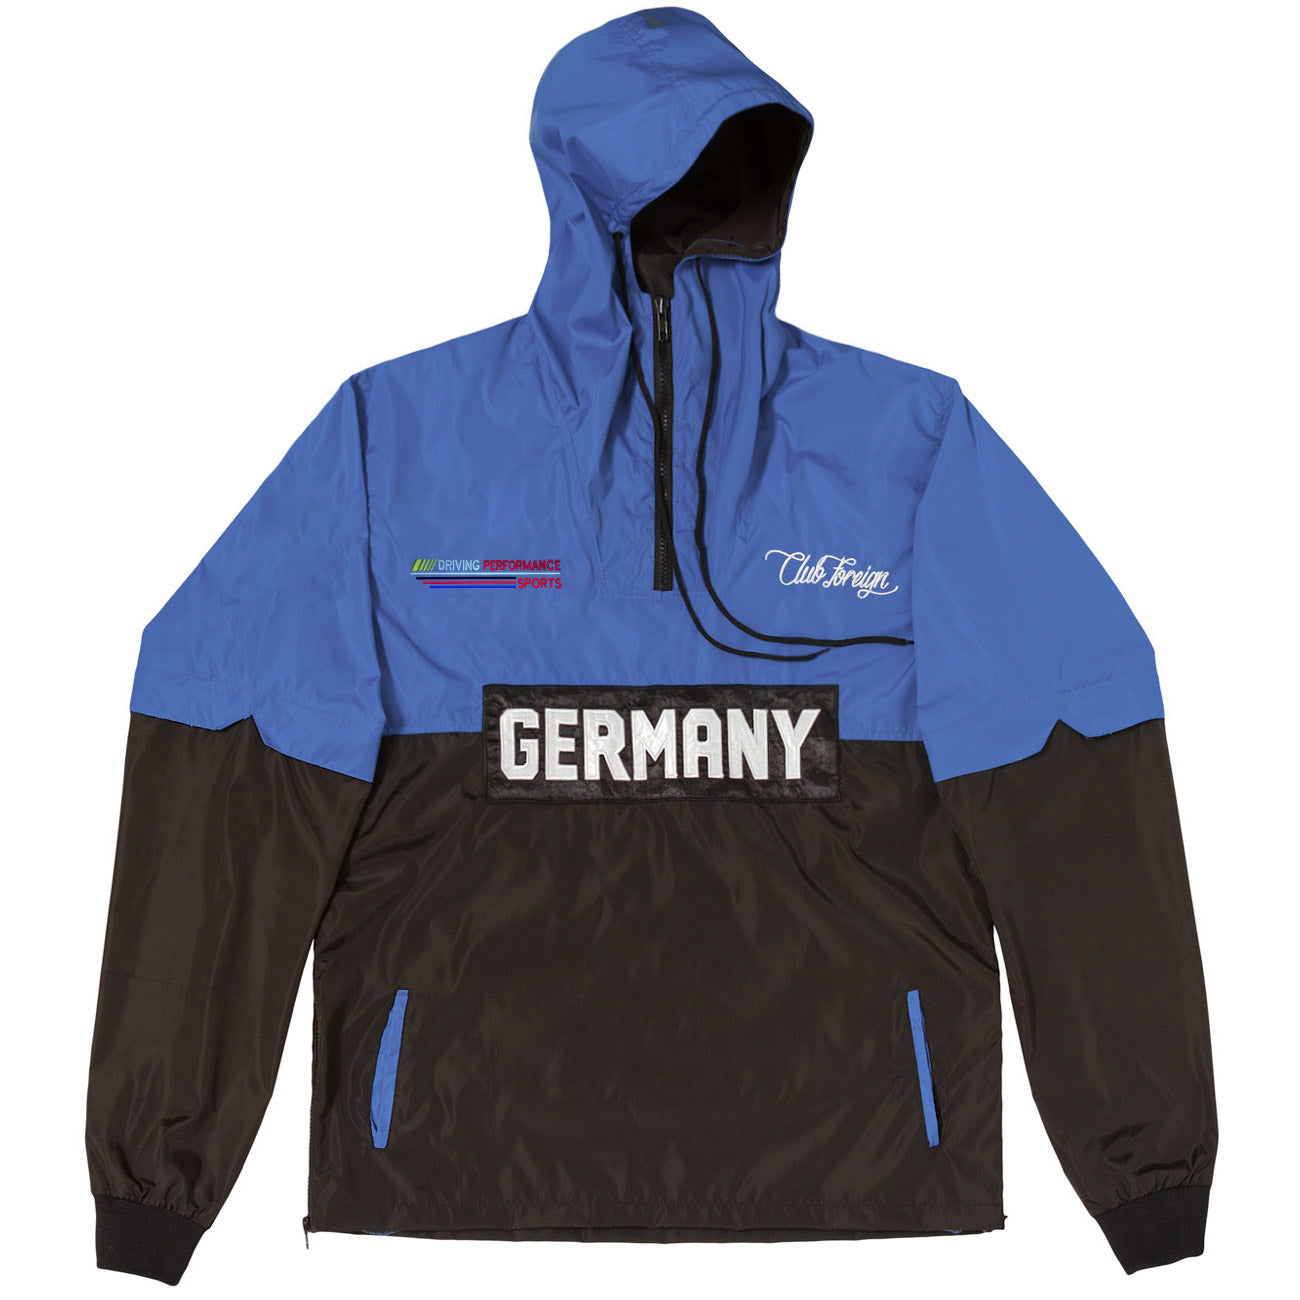 ClubForeign Performance Windbreaker Jacket Blue Black - Trends Society